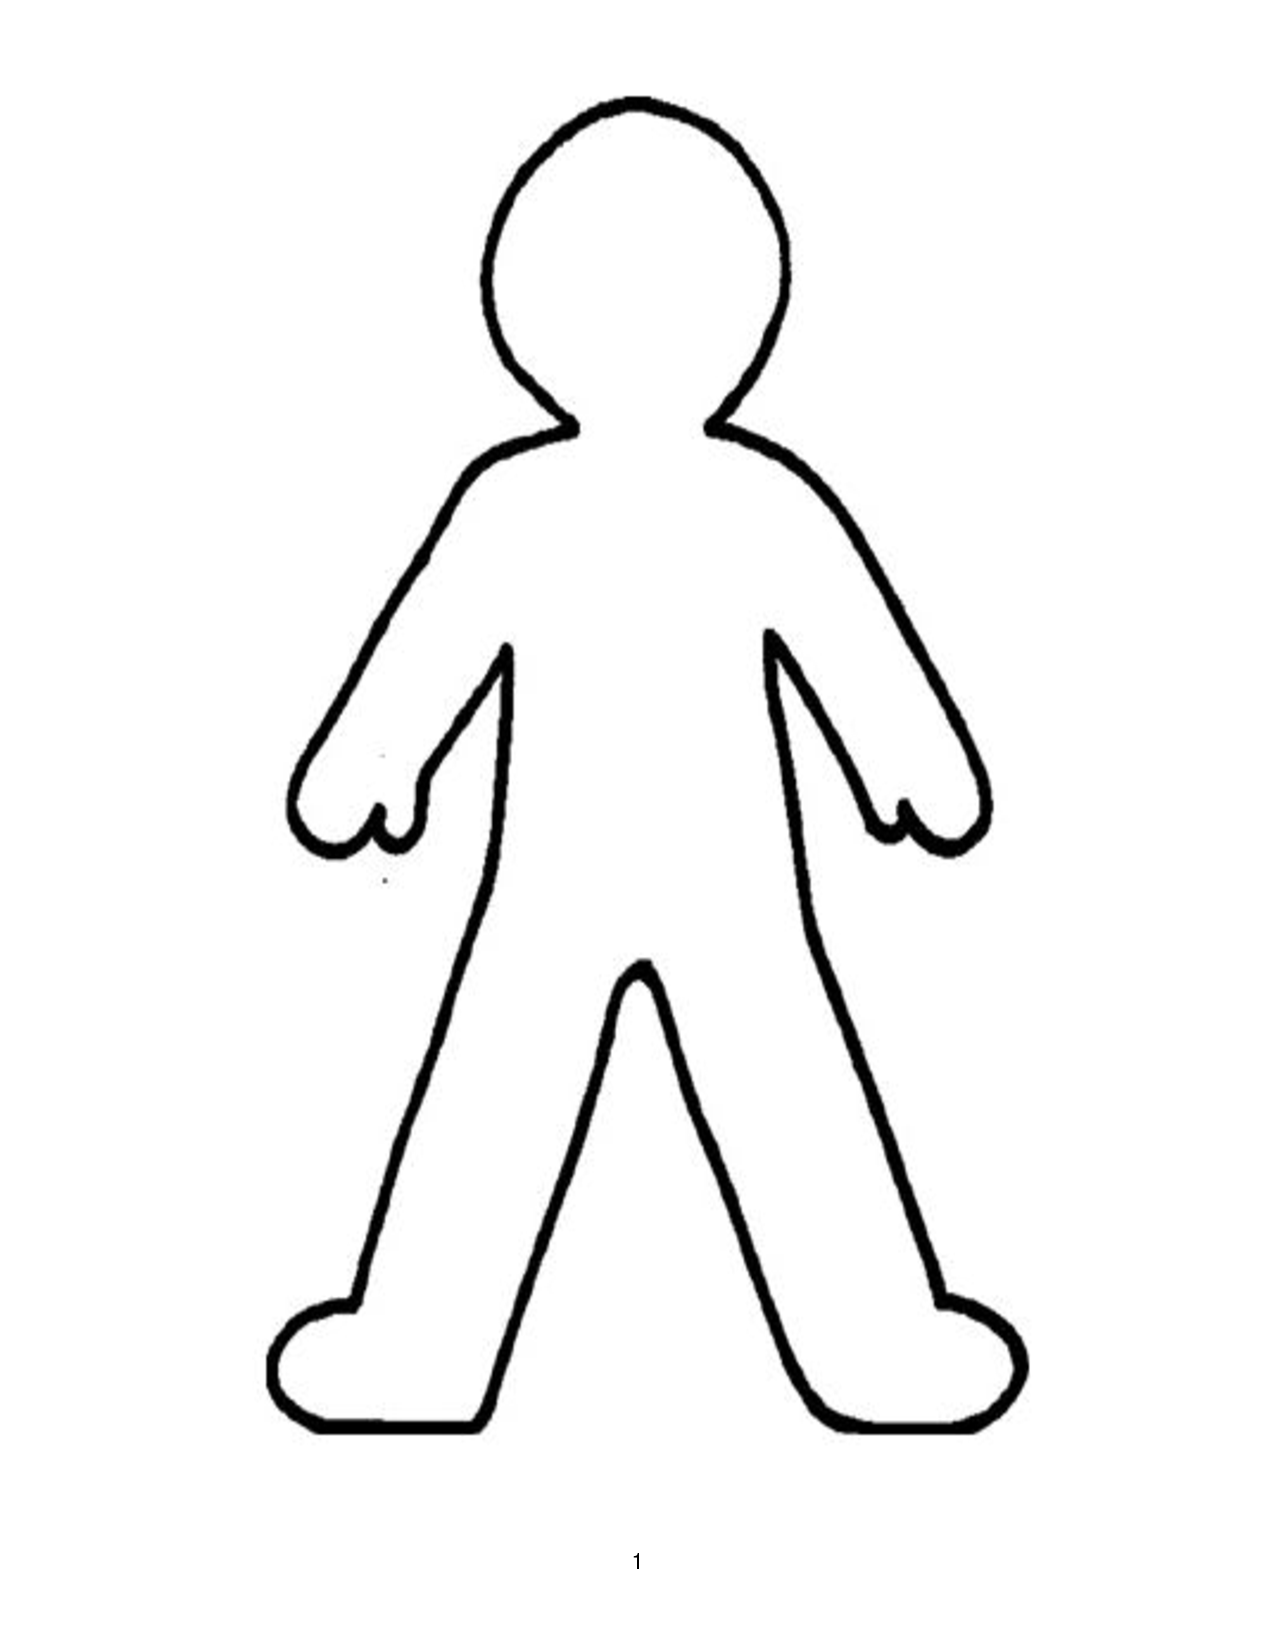 clipart freeuse Free human body download. Youth clipart outline person